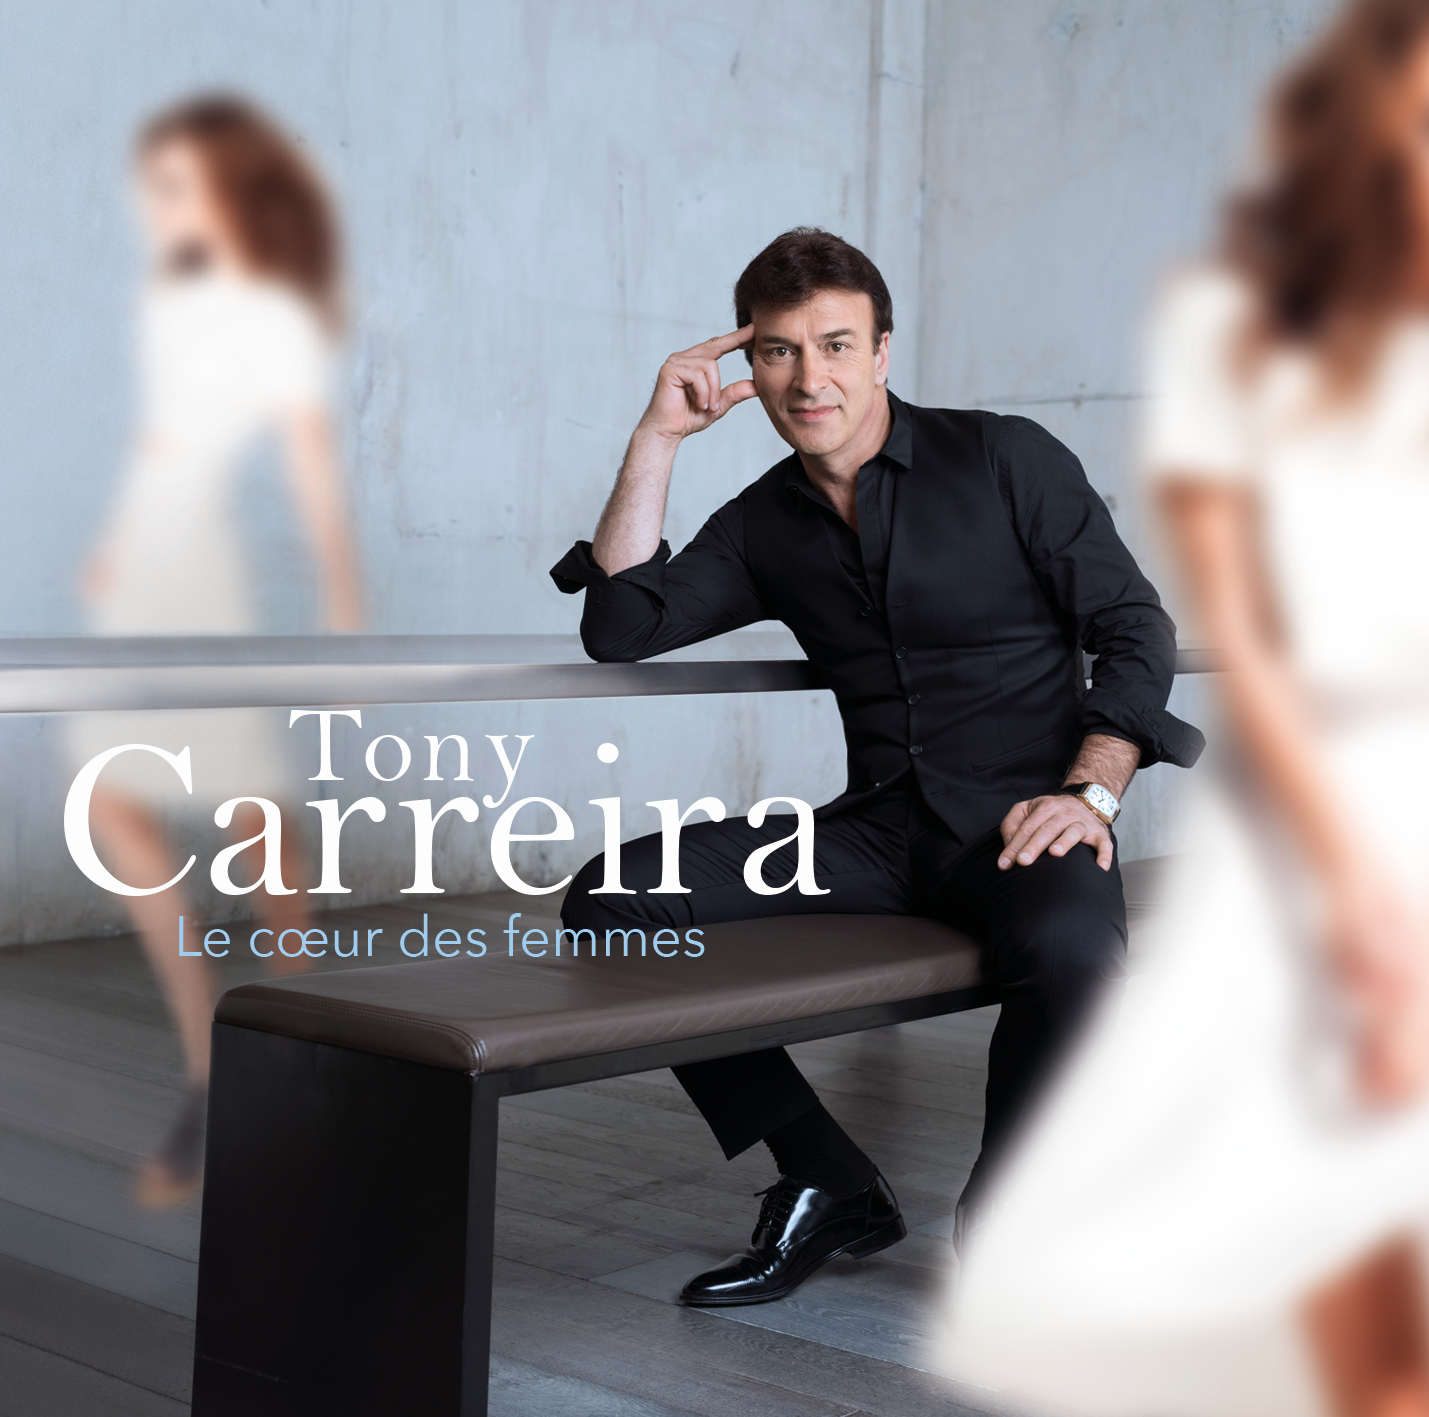 tony-carreira-le-coeur-des-femmes-cover-album-justmusic-fr